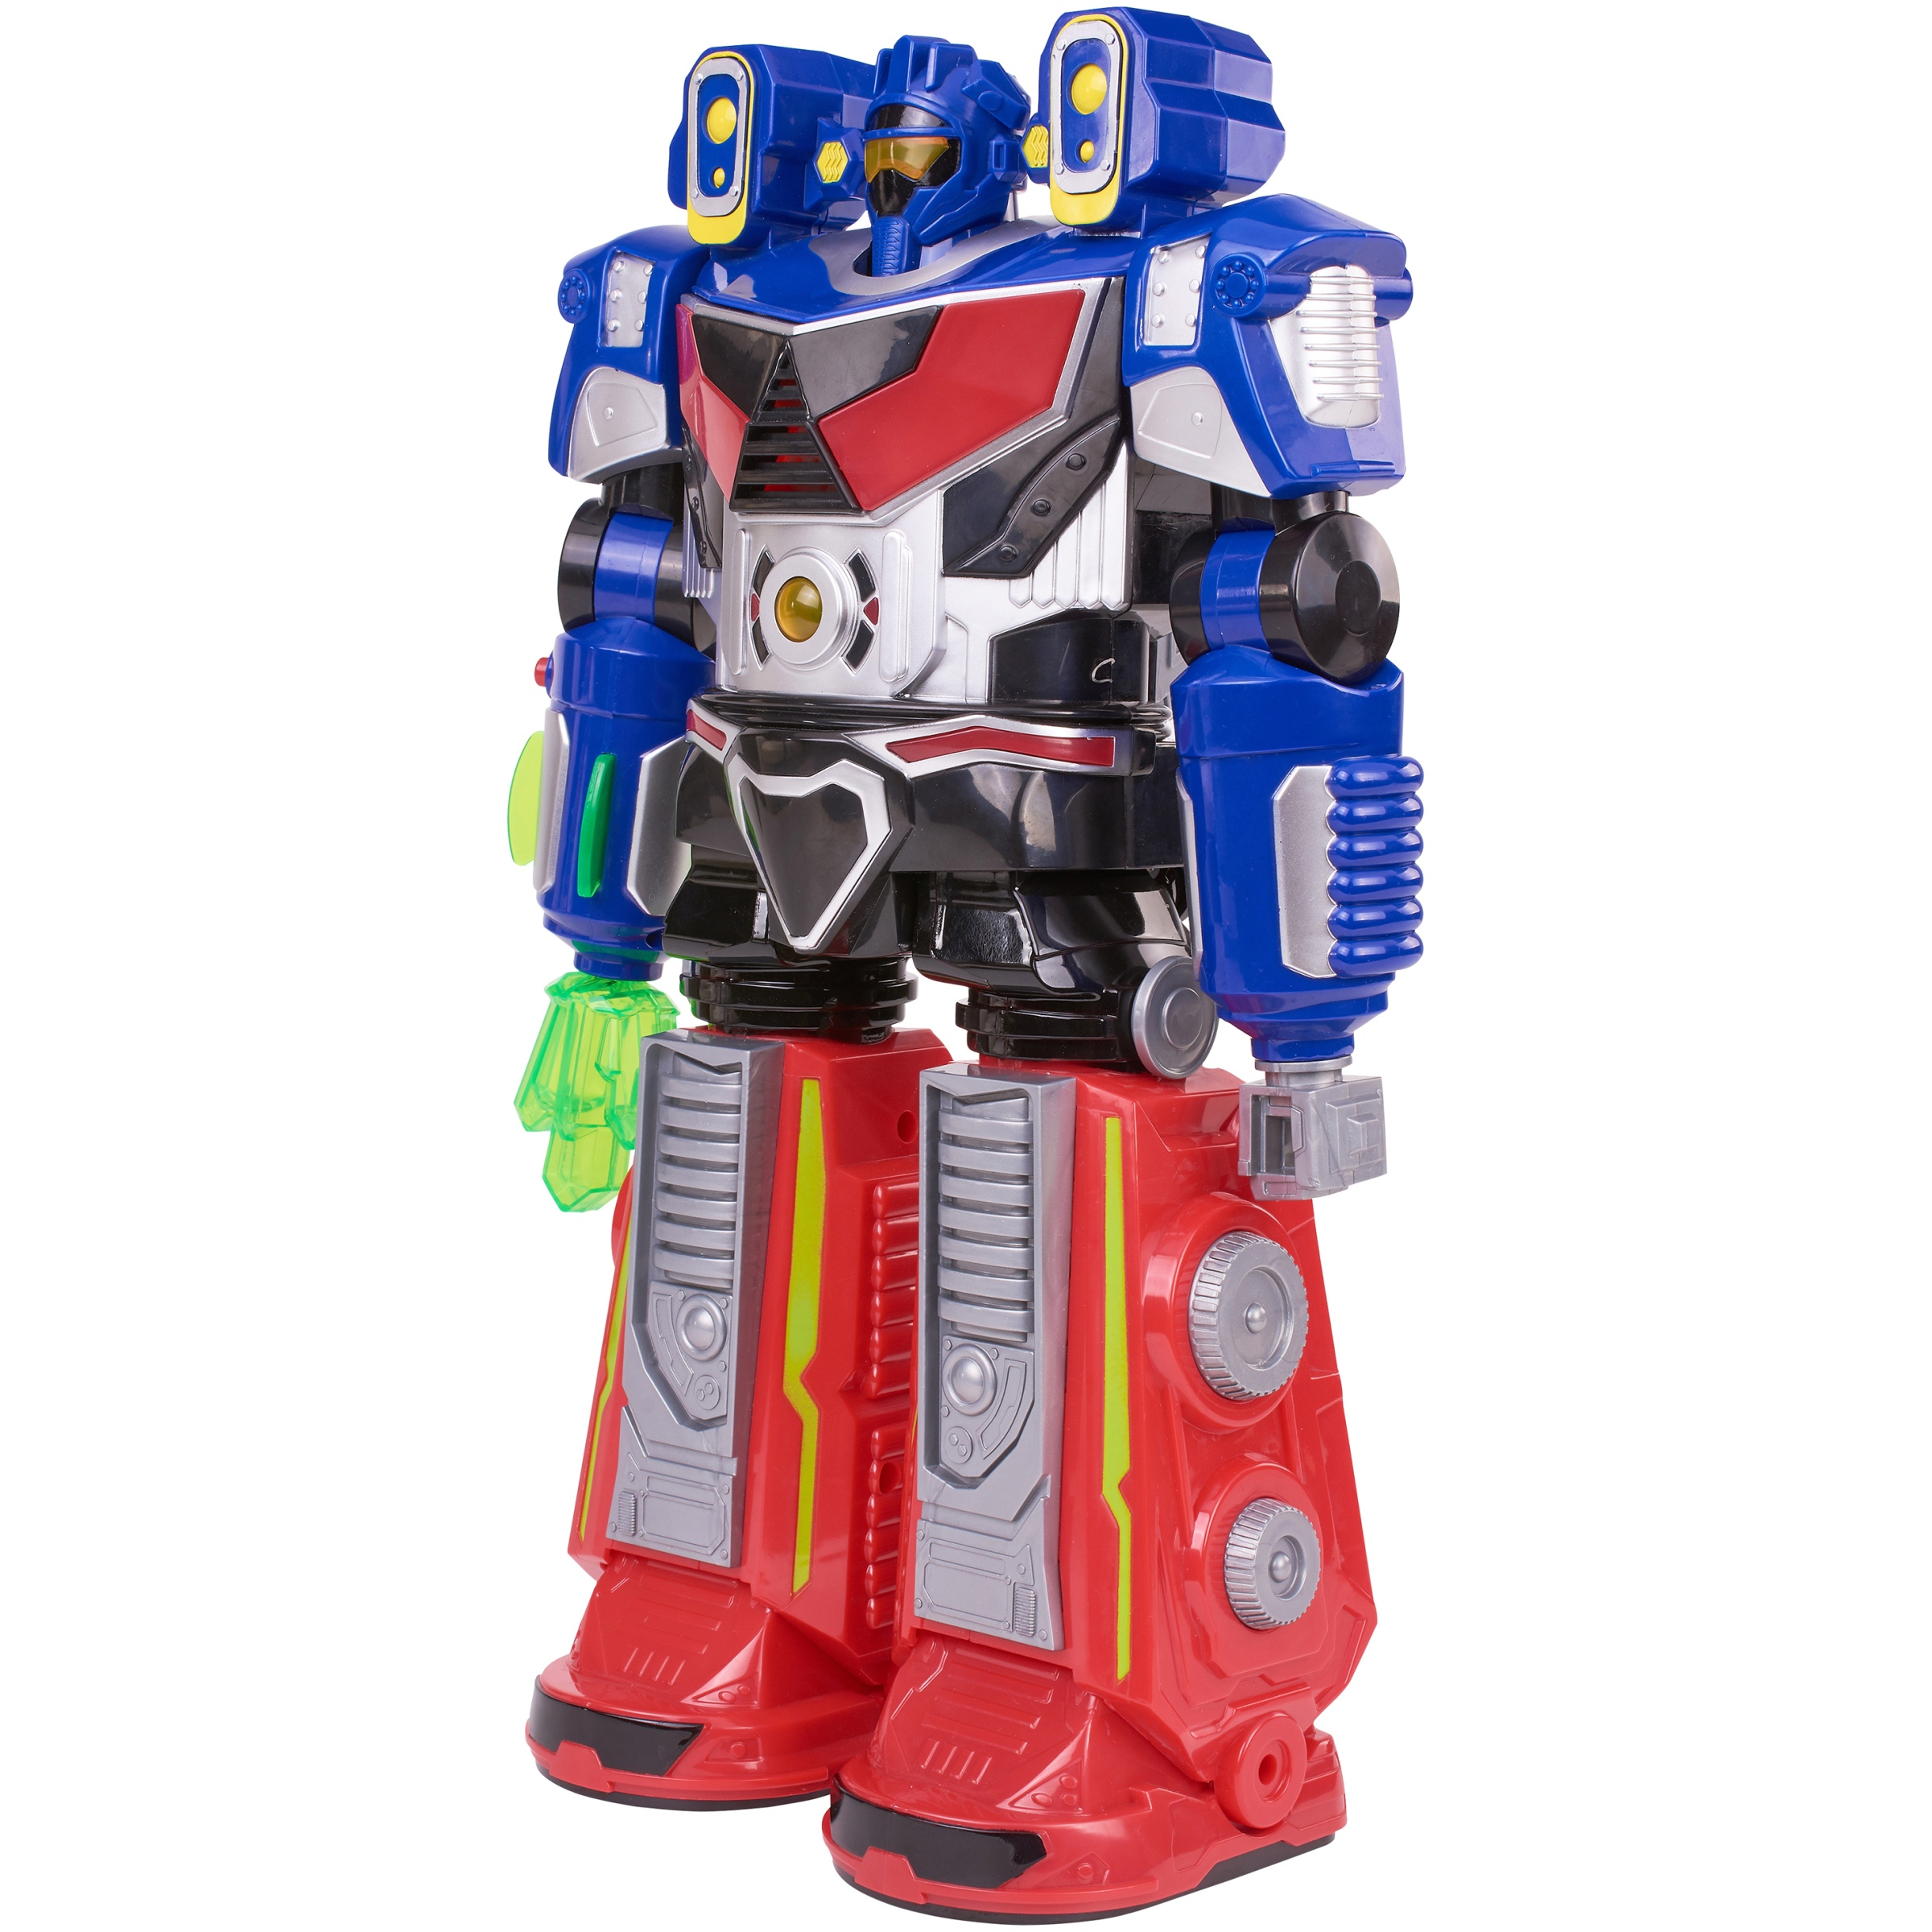 Adventure Force Astrobot Walking Robot Toy with Lights & Sound by Goldlok Toys Holdings (Guangdong) Co., Ltd.